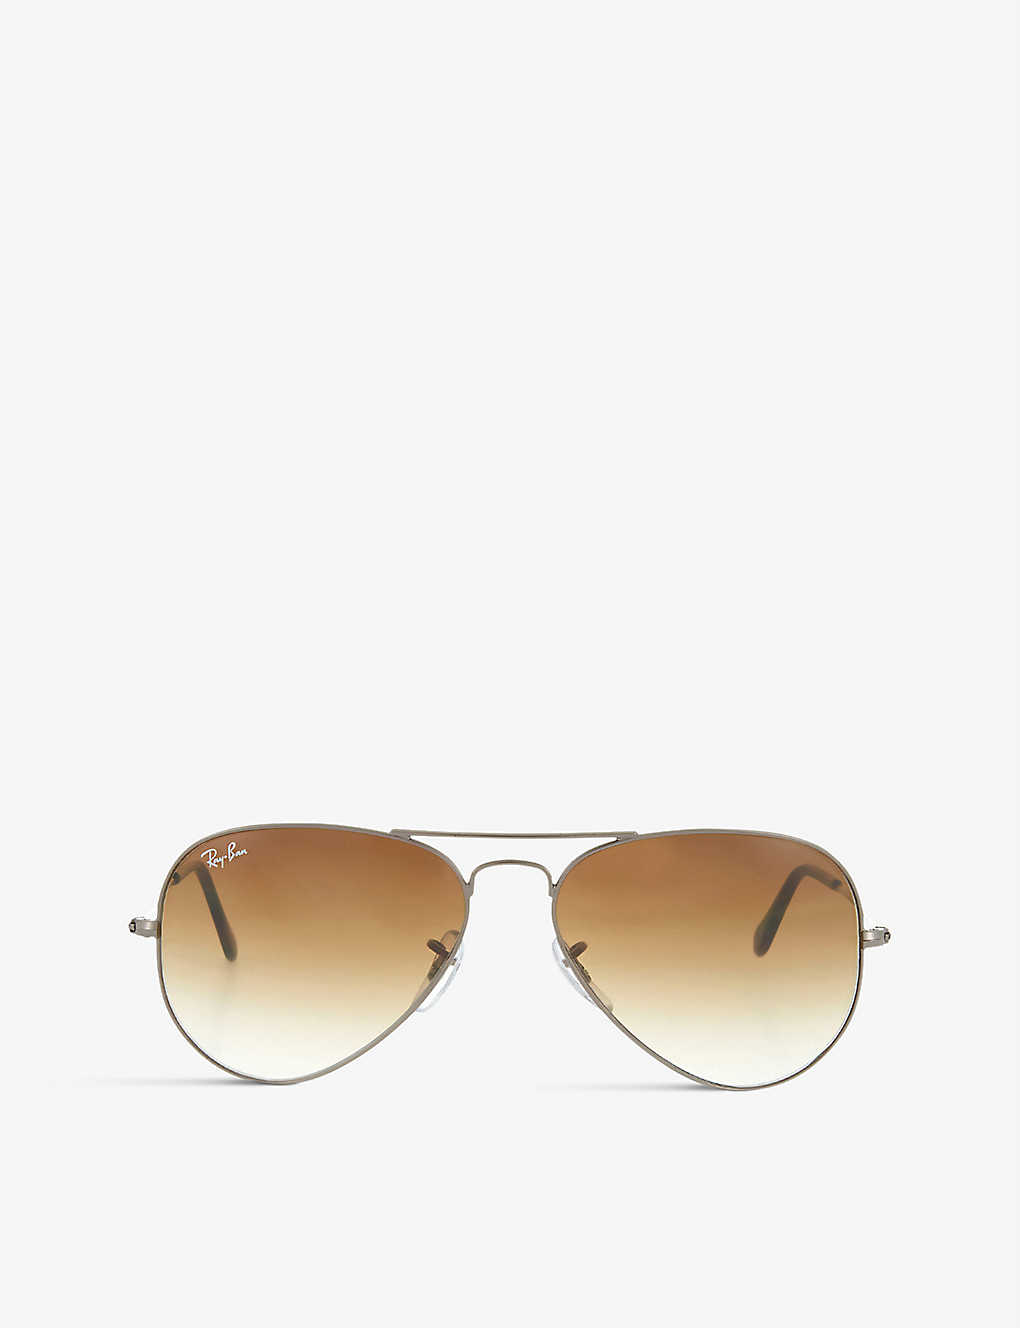 RAY-BAN: Gunmetal aviator sunglasses with gradient lenses RB3025 55